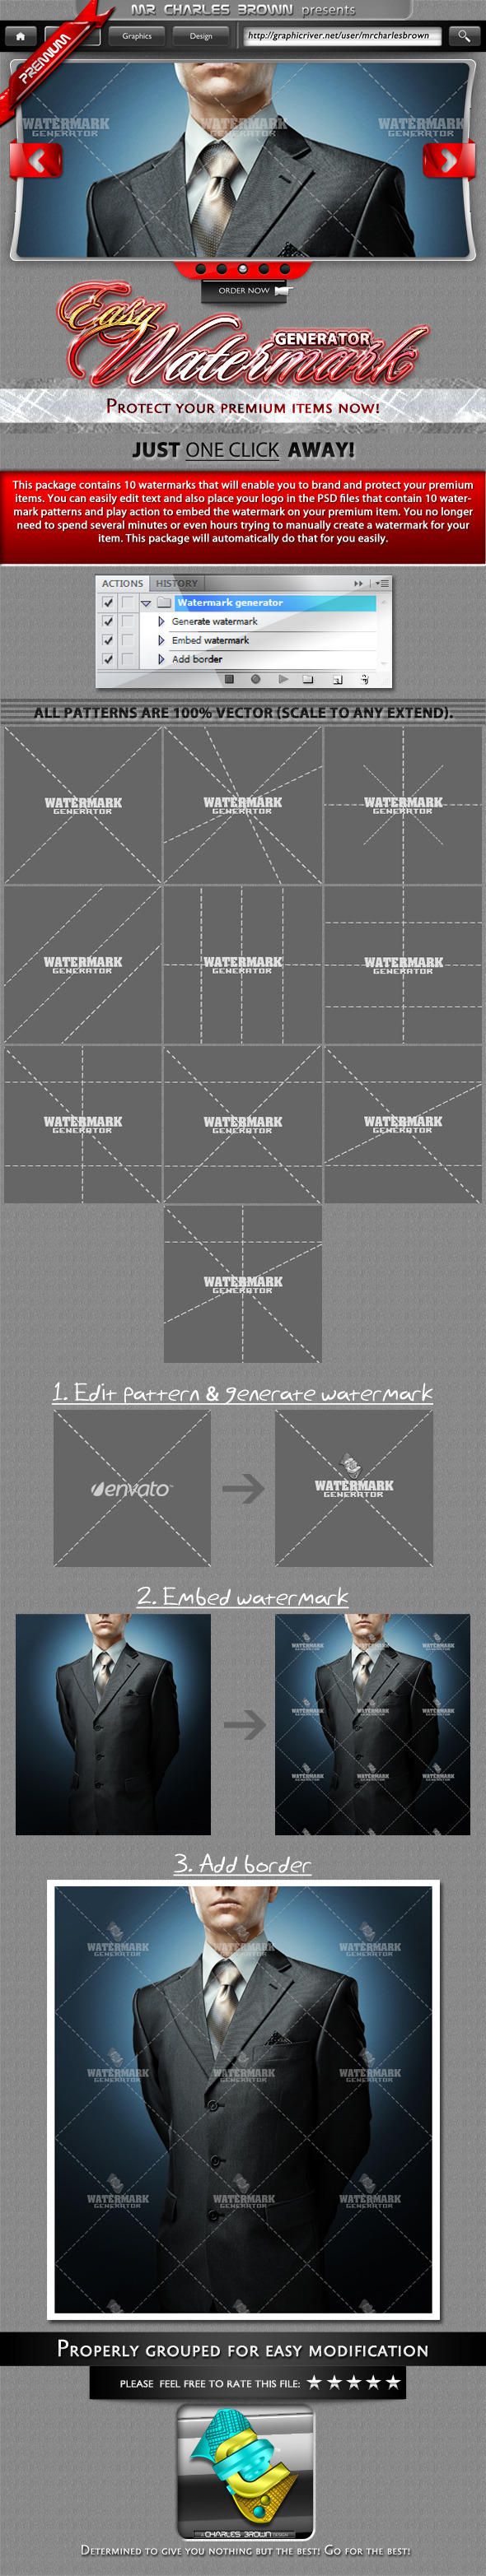 Watermark Photoshop Add-ons from GraphicRiver